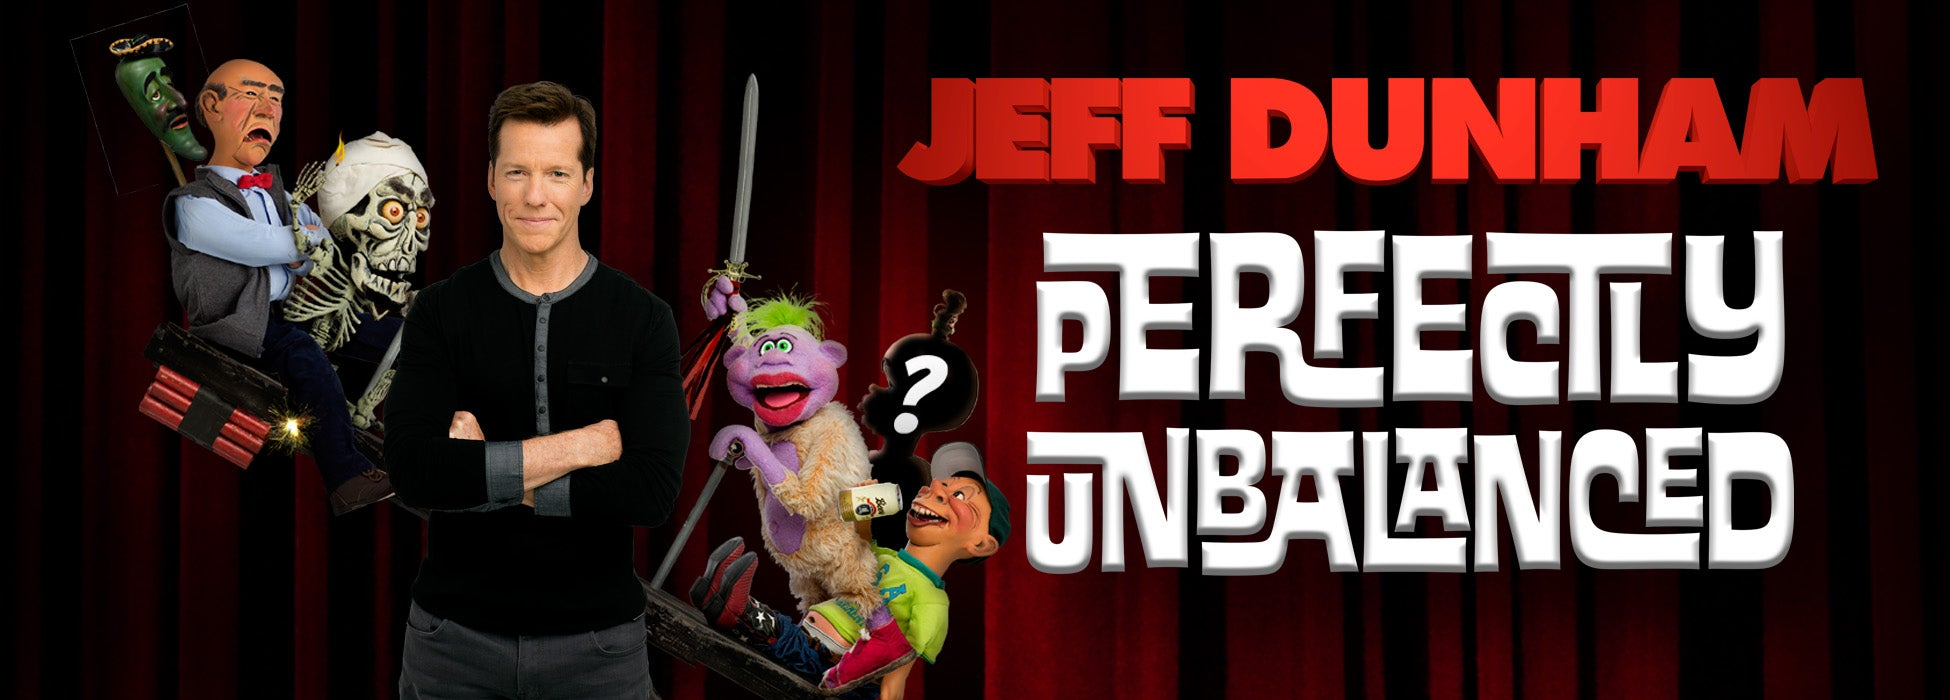 Jeff Dunham_Norfolk_1950x700.jpg